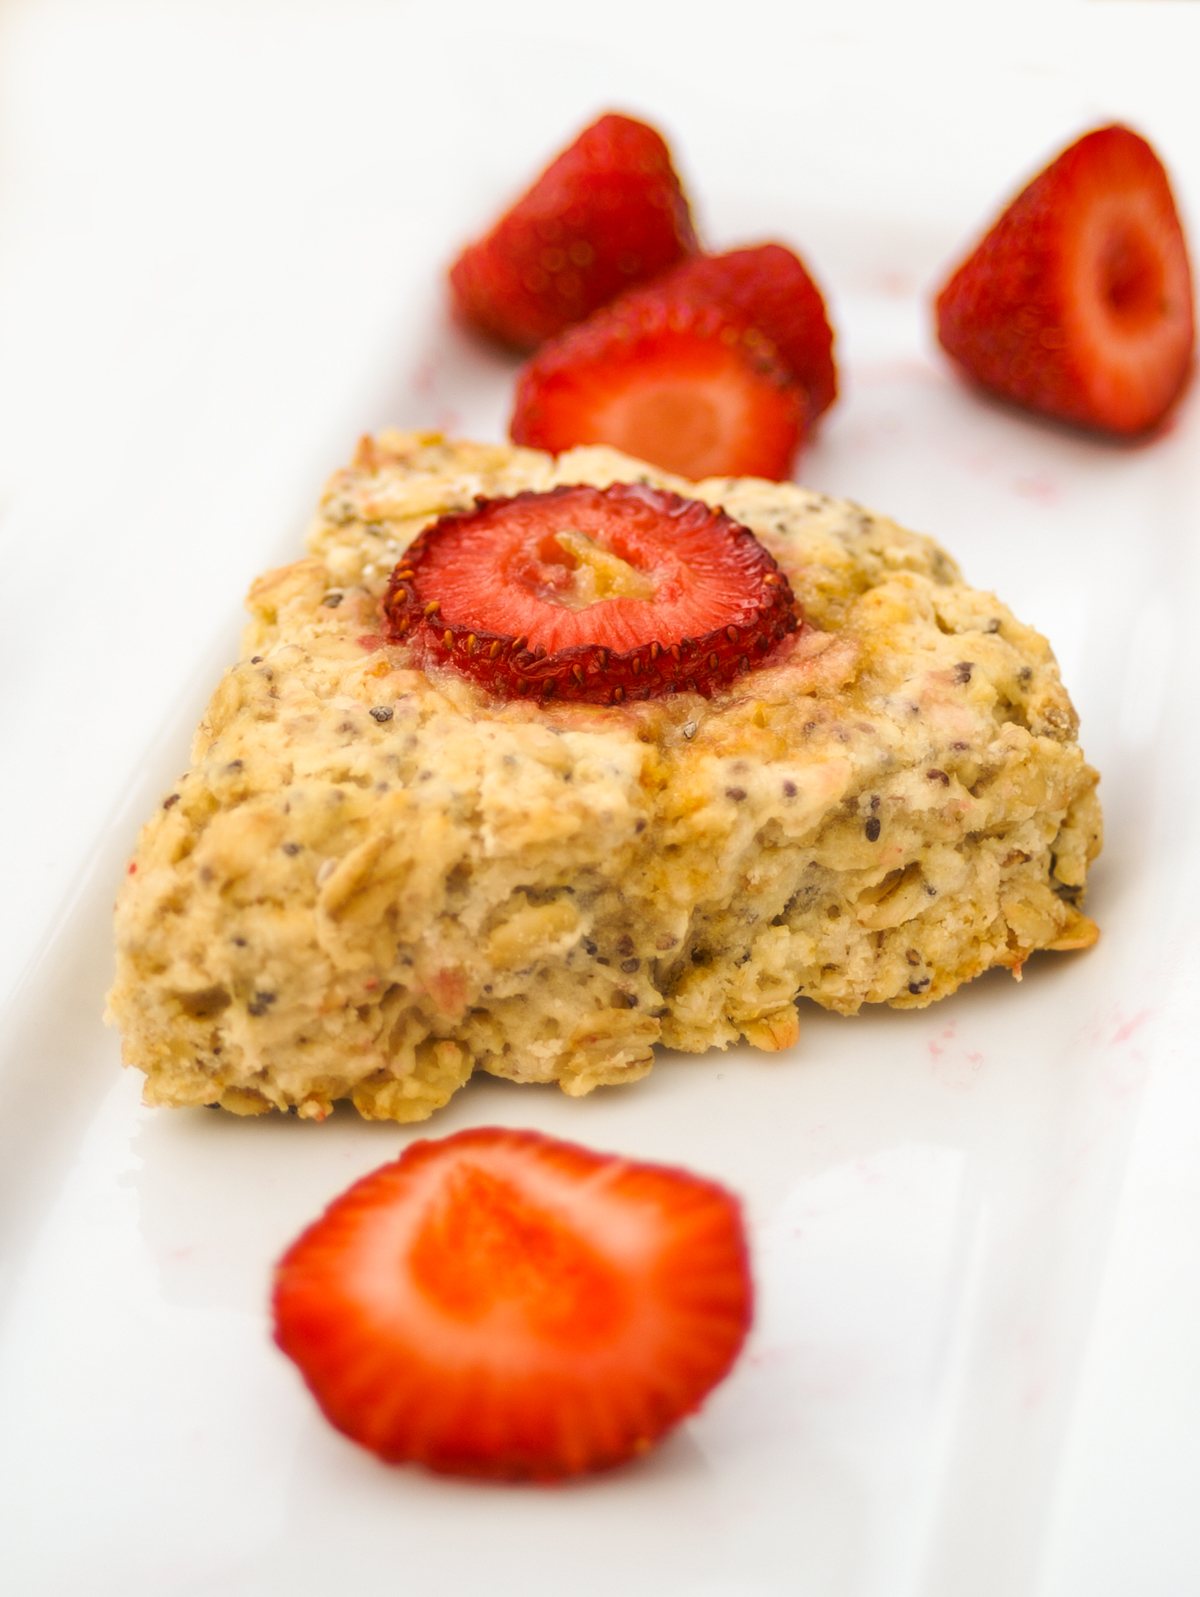 vegan Chia Oatmeal Breakfast Scone With Strawberries